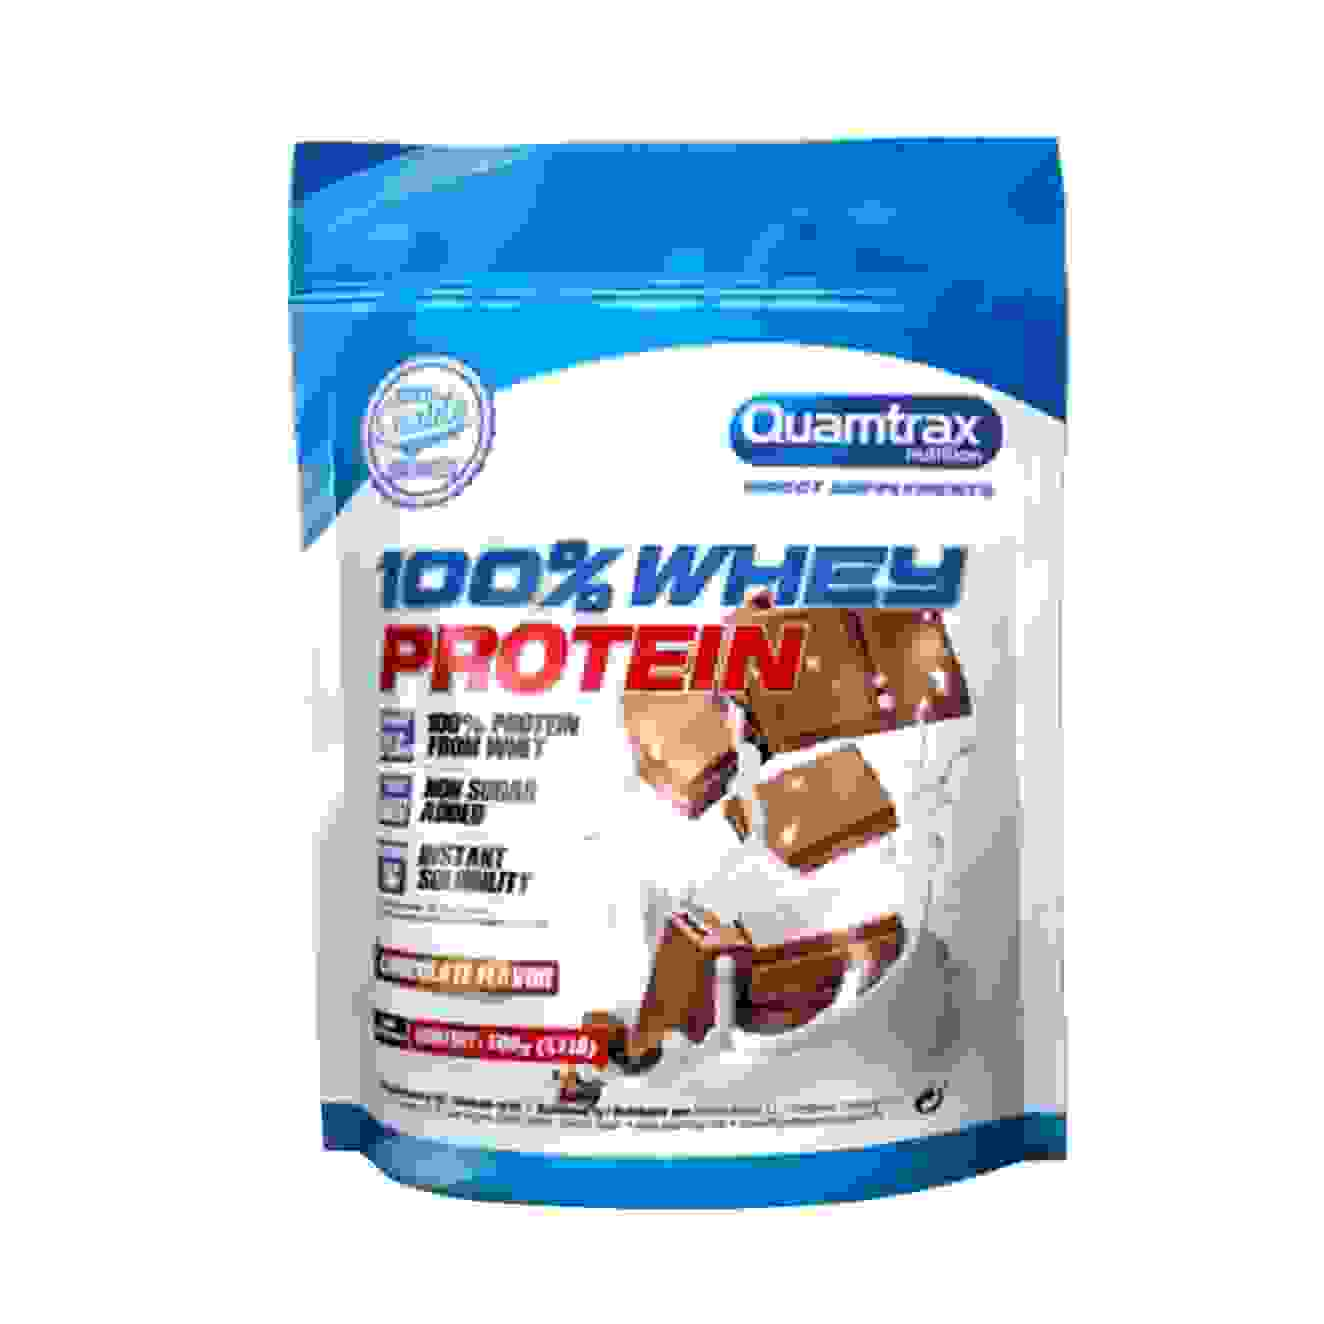 Quamtrax Direct Whey Protein 500g